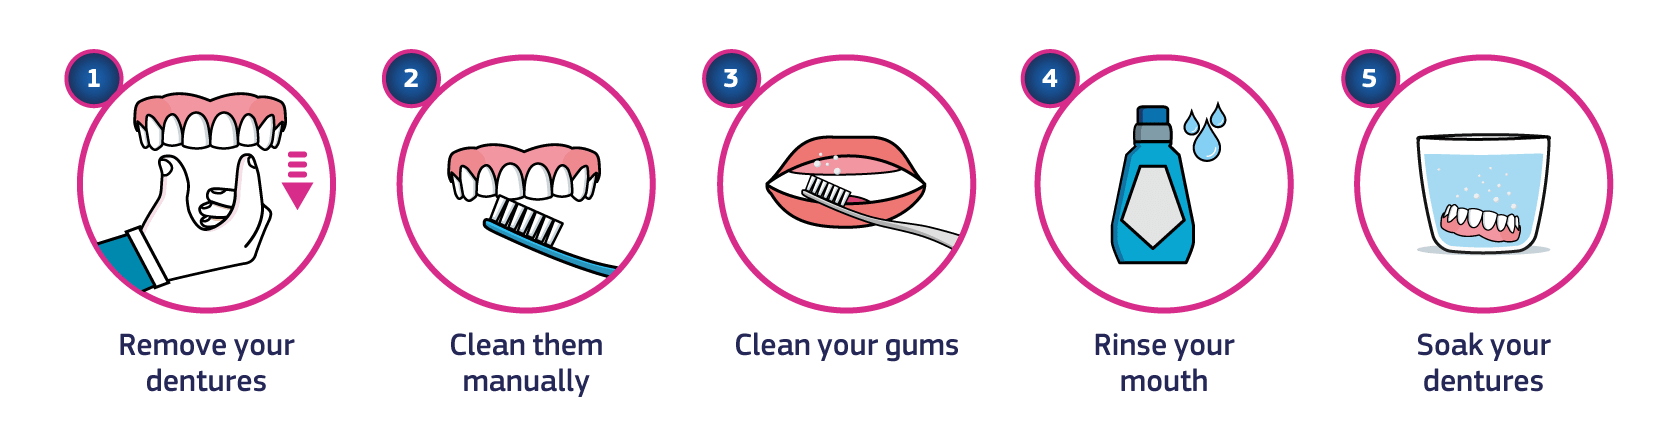 Infographic showing how to remove your dentures for the night: Step 1. Remove your dentures. Step 2. Clean them manually. Step 3. Clean your gums. Step 4. Rinse your mouth. Step 5. Soak your dentures.